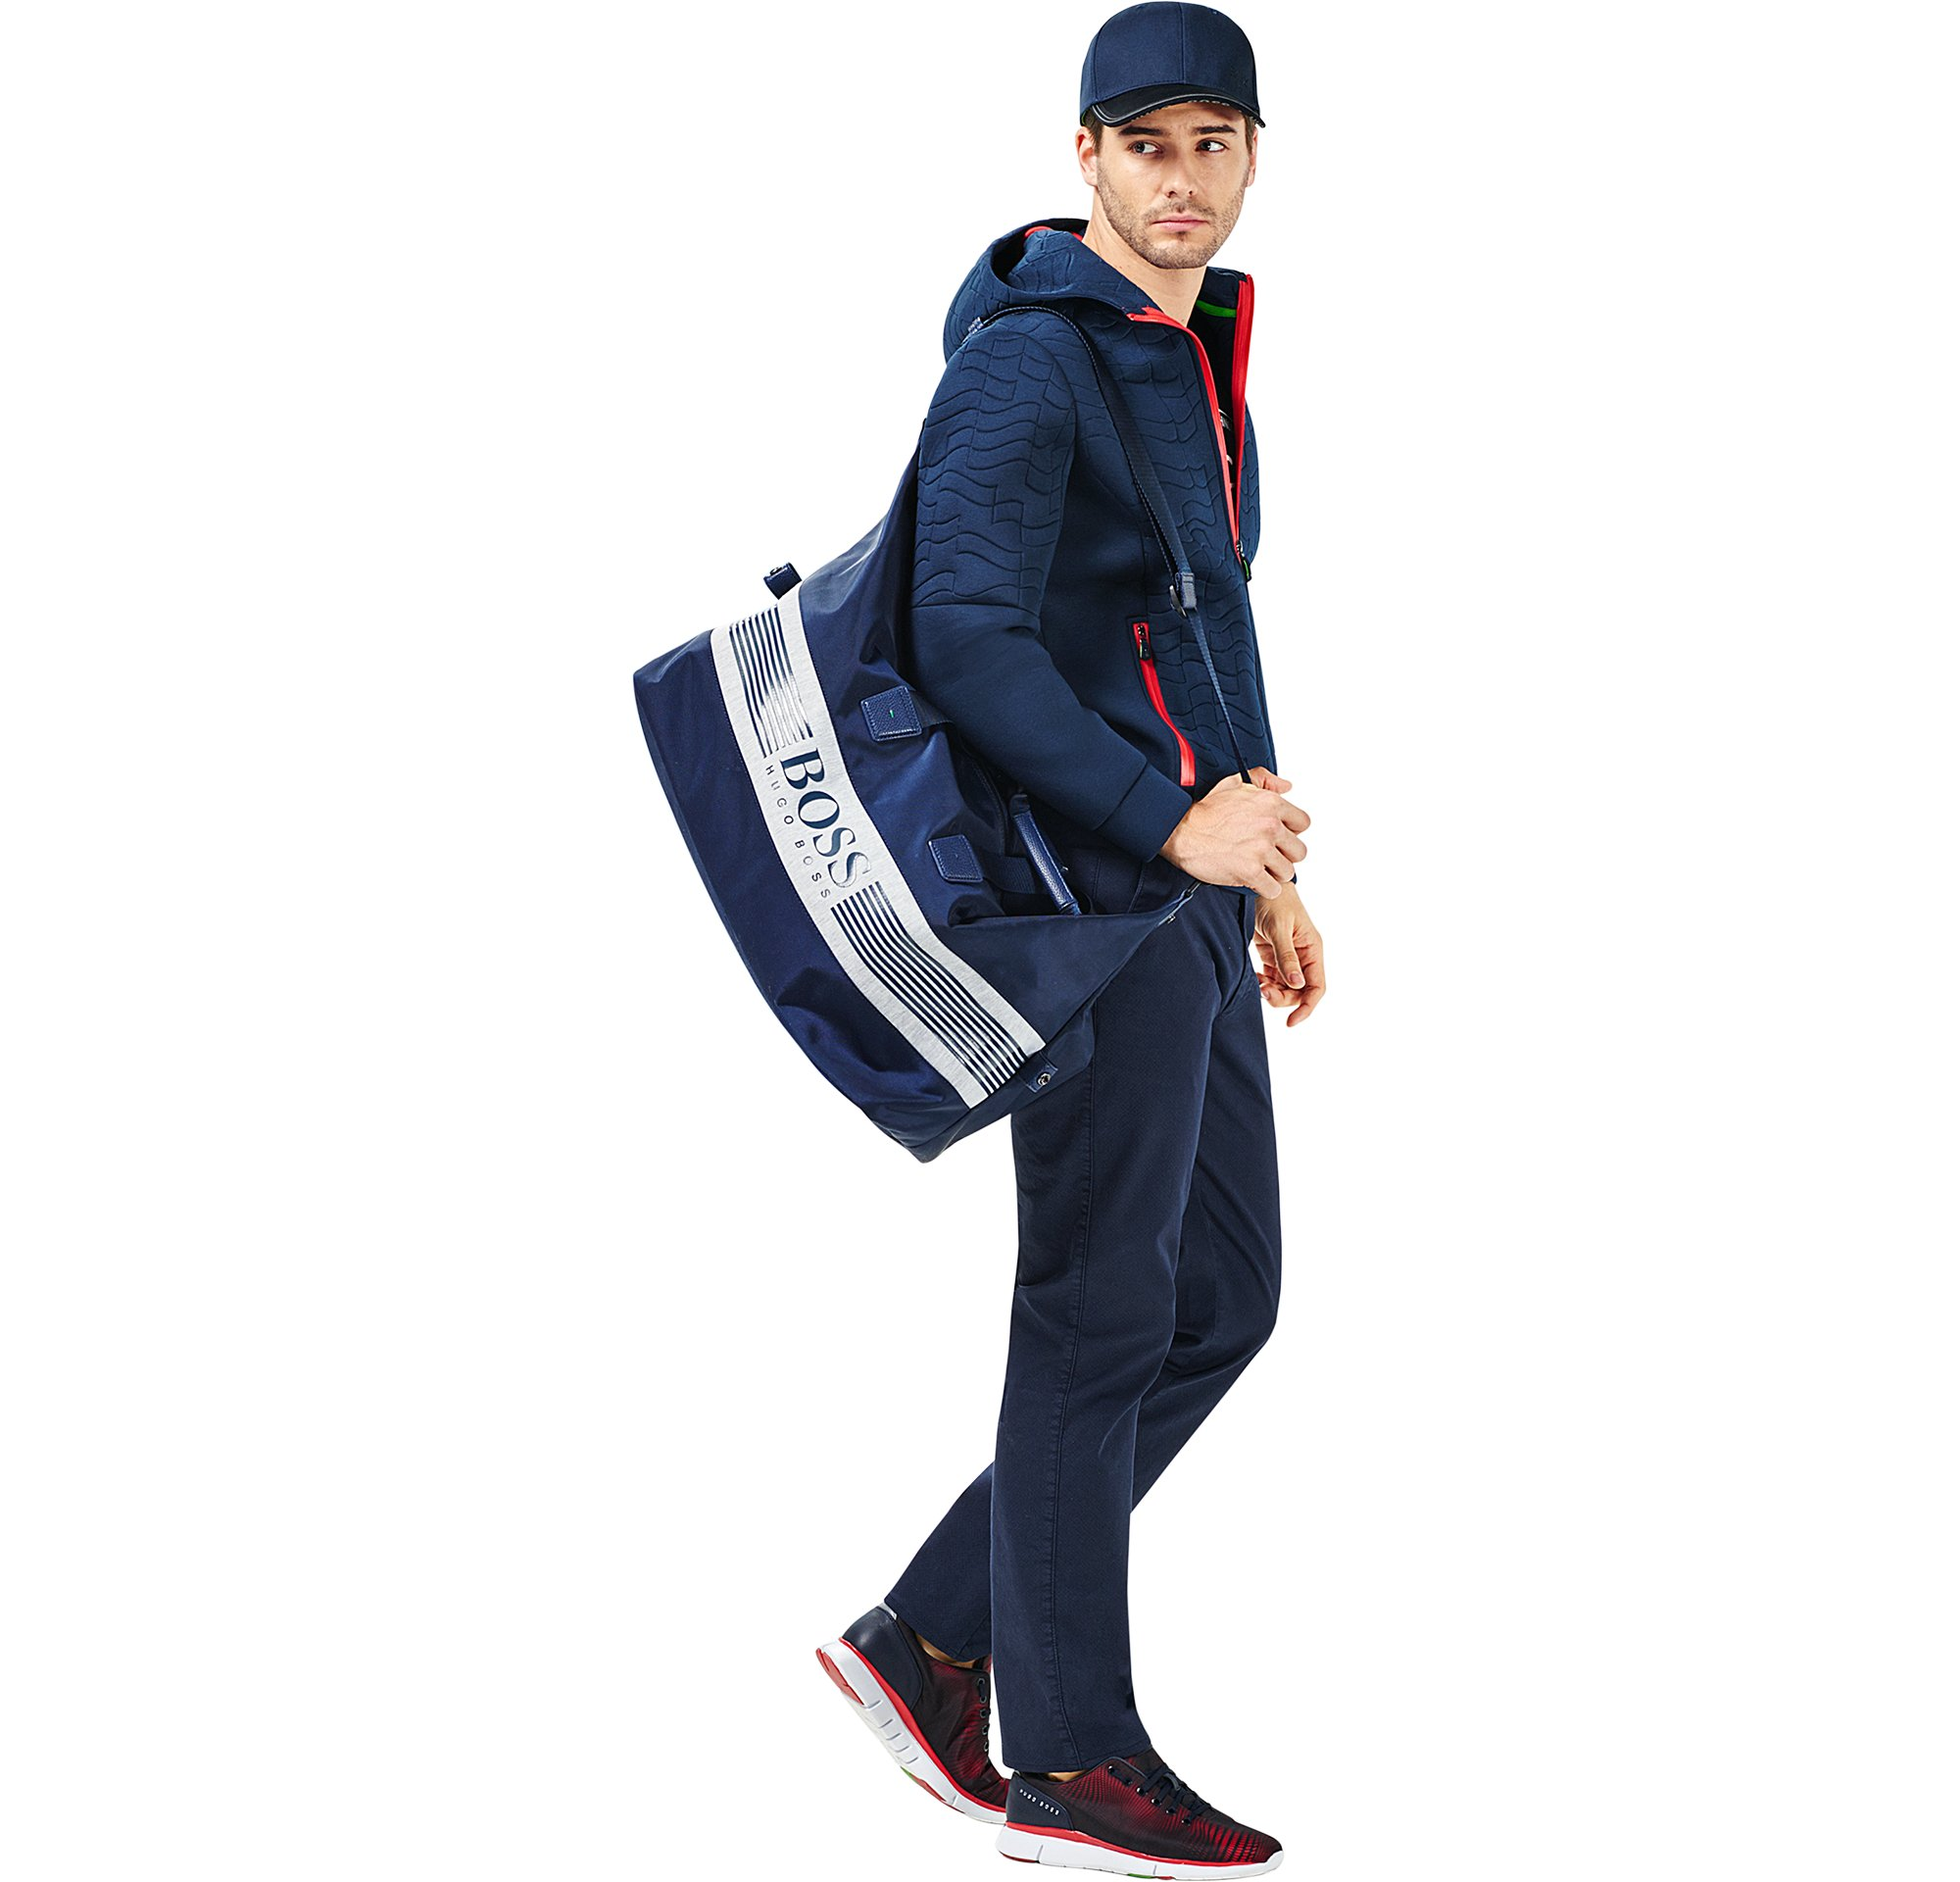 Outerwear,  jersey, trousers, shoes, cap and bag by BOSS Green Menswear